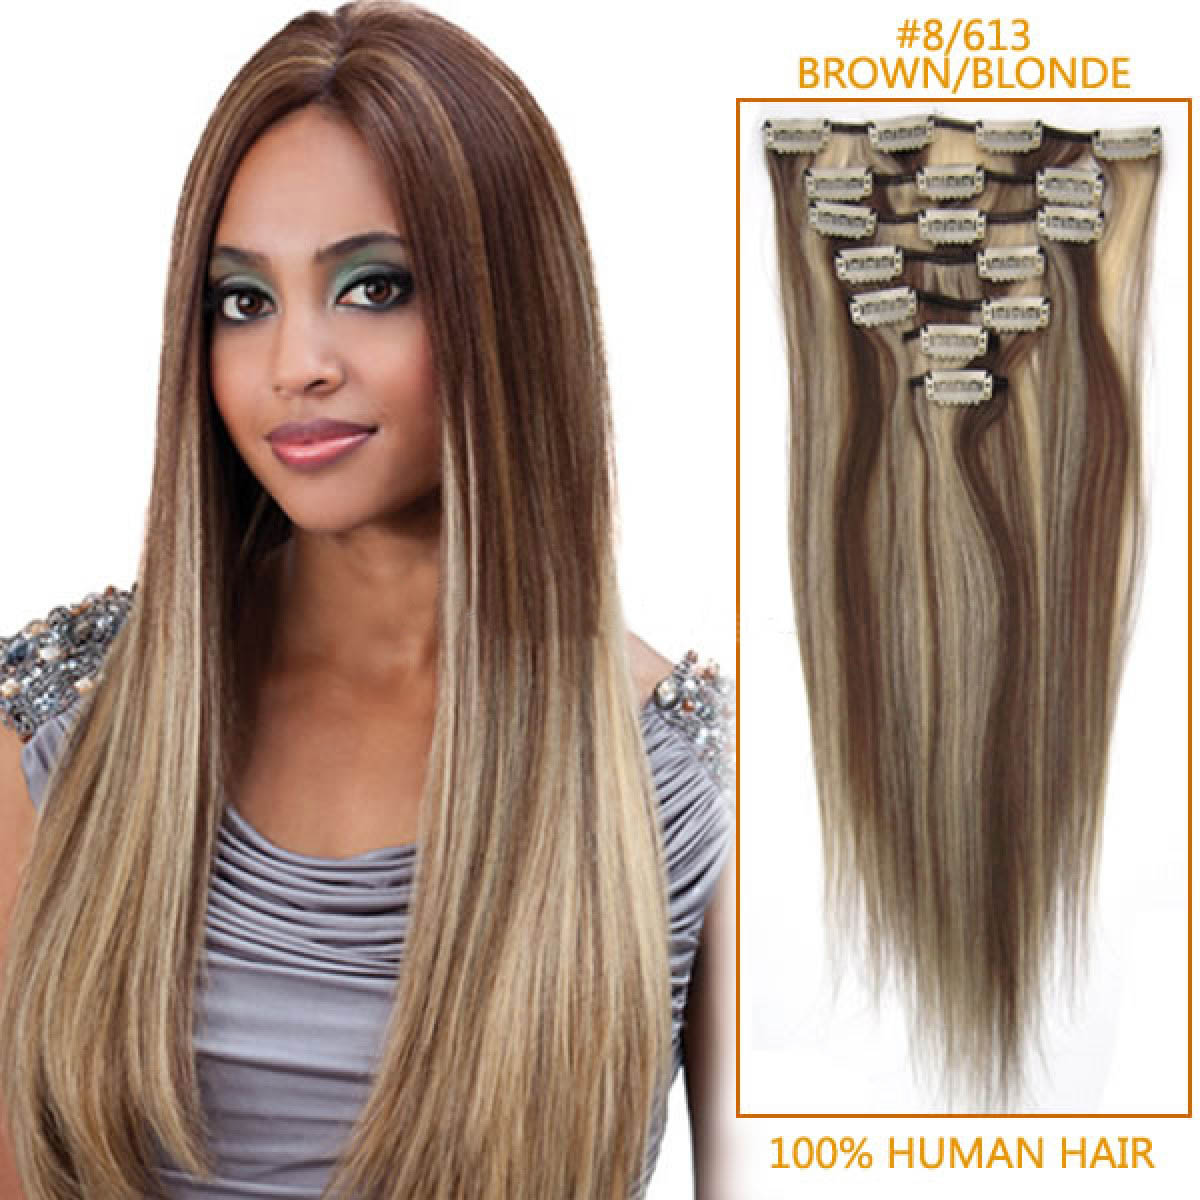 15 Inch 8613 Brownblonde Clip In Human Hair Extensions 9pcs